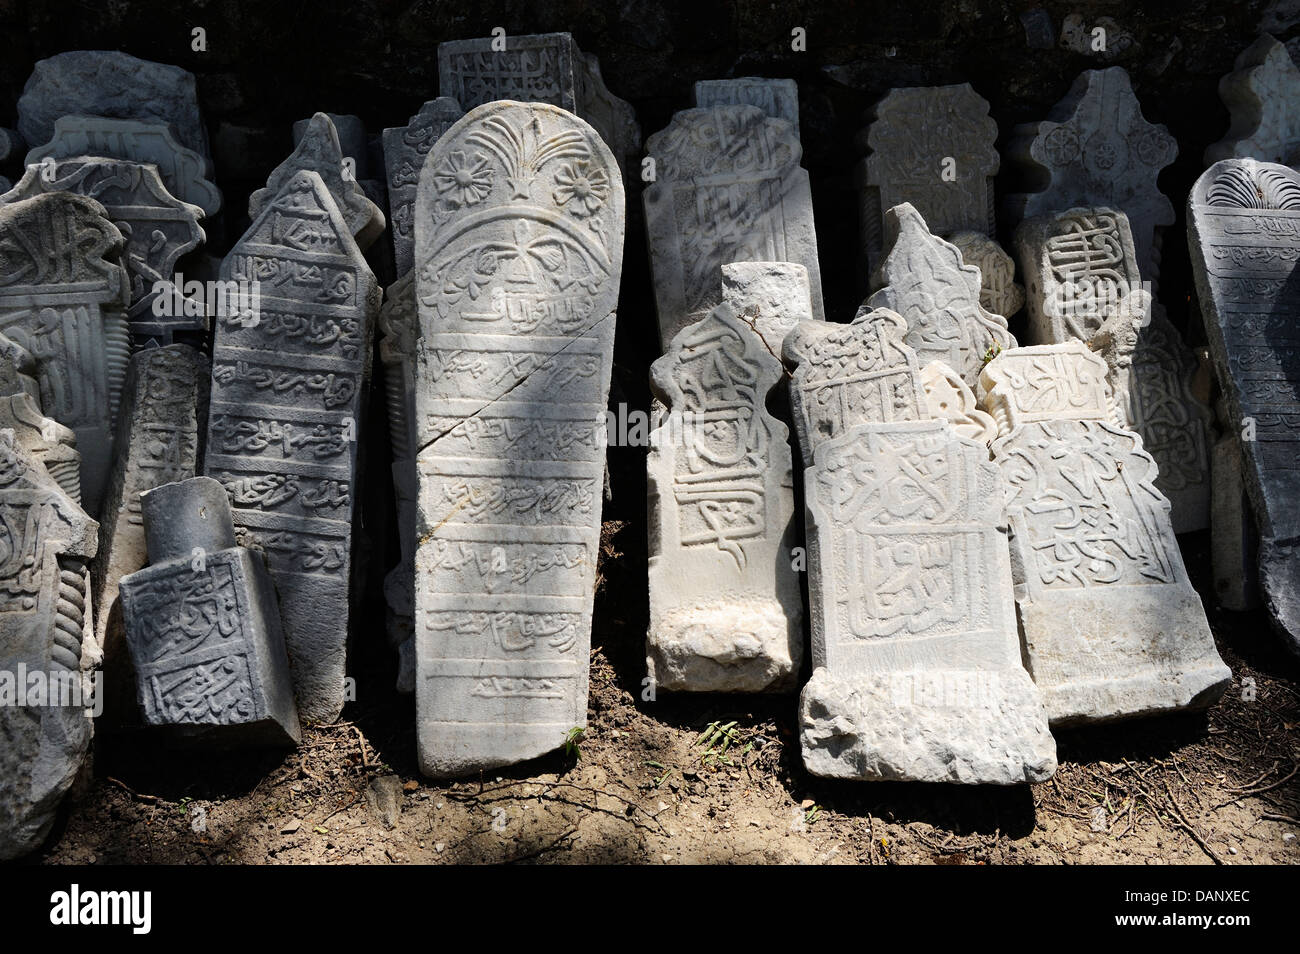 old tombstones in outer courtyard of Ilyas Bey Mosque (15th Century) at Miletus, Aegean Coast, Turkey - Stock Image